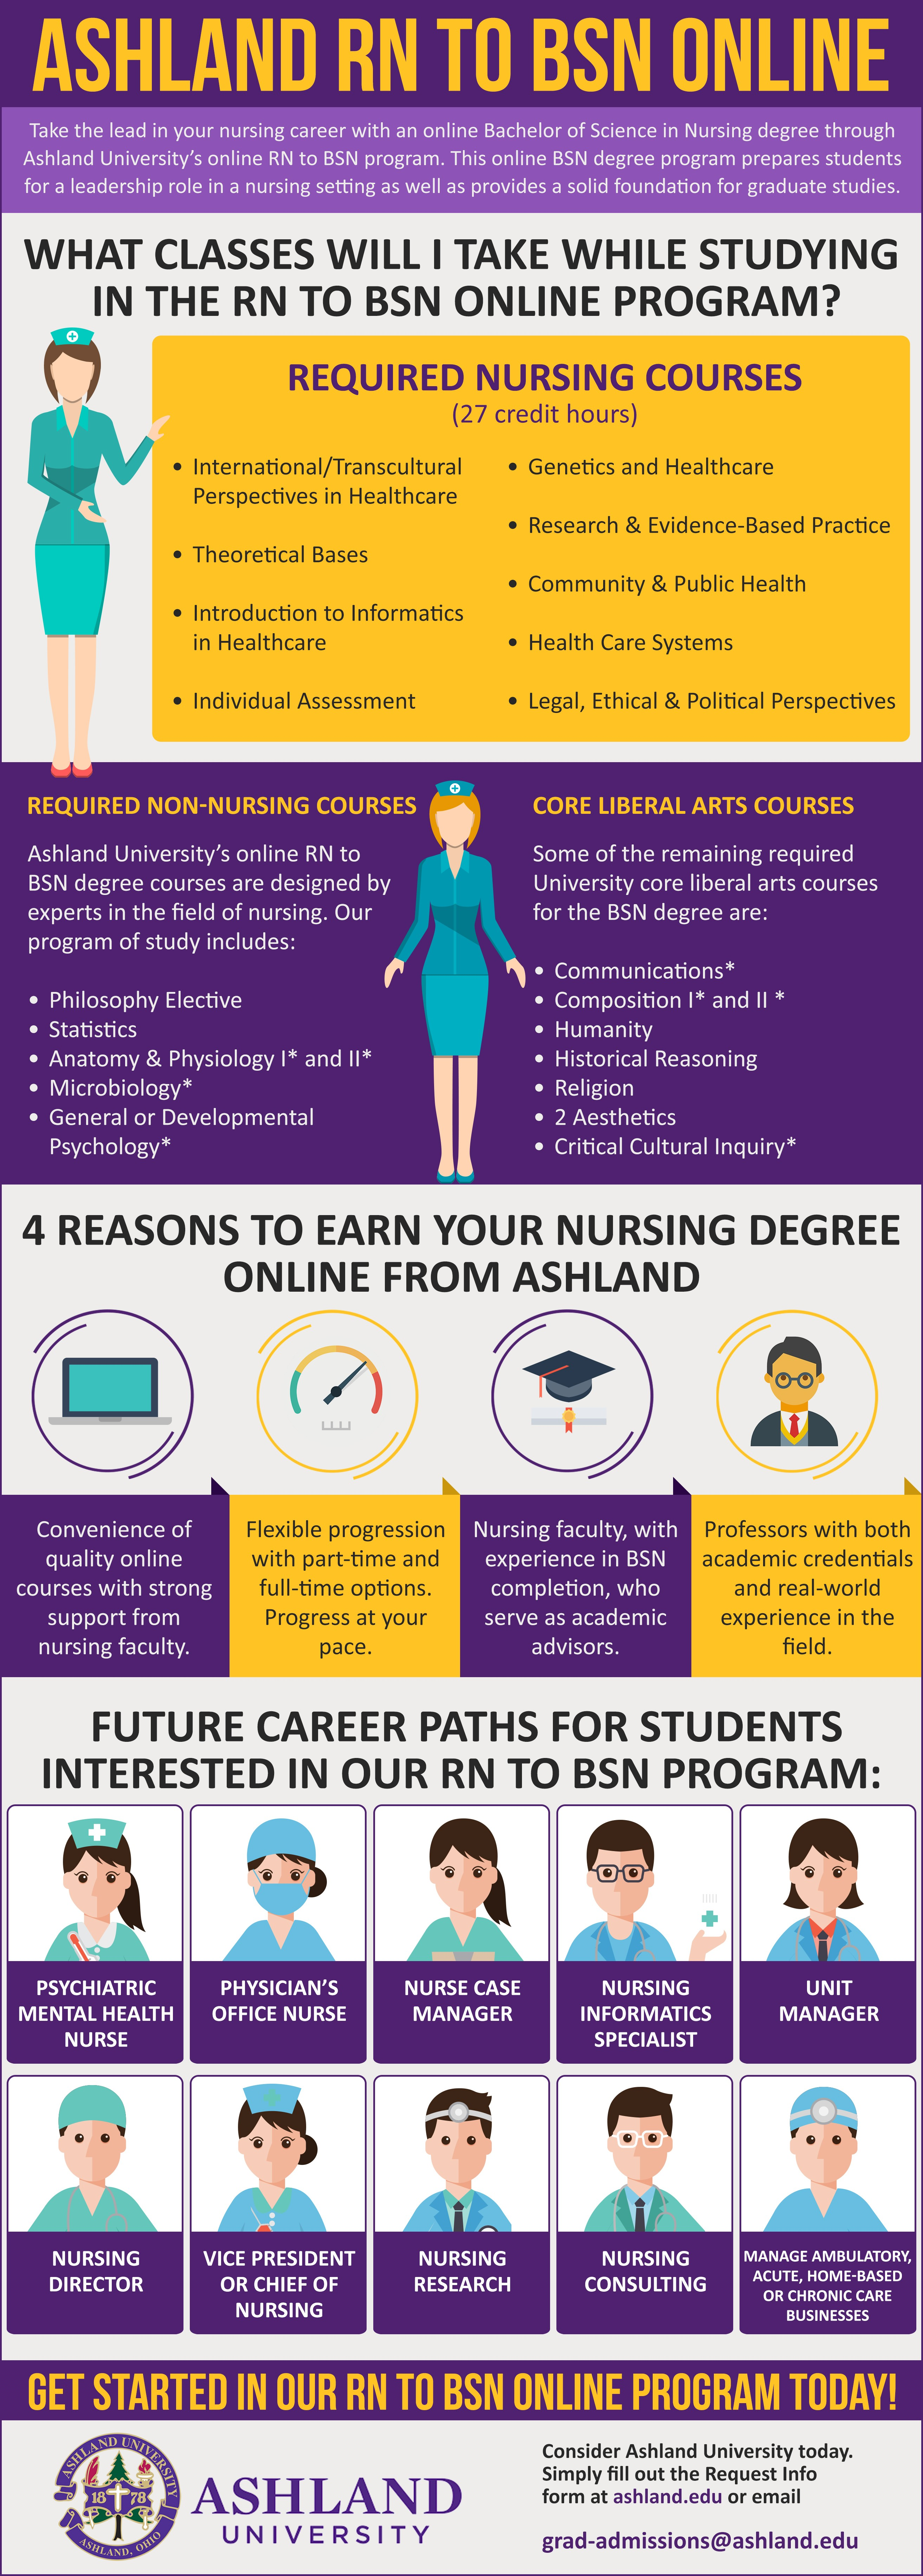 RN to BSN Online Program | Ashland University